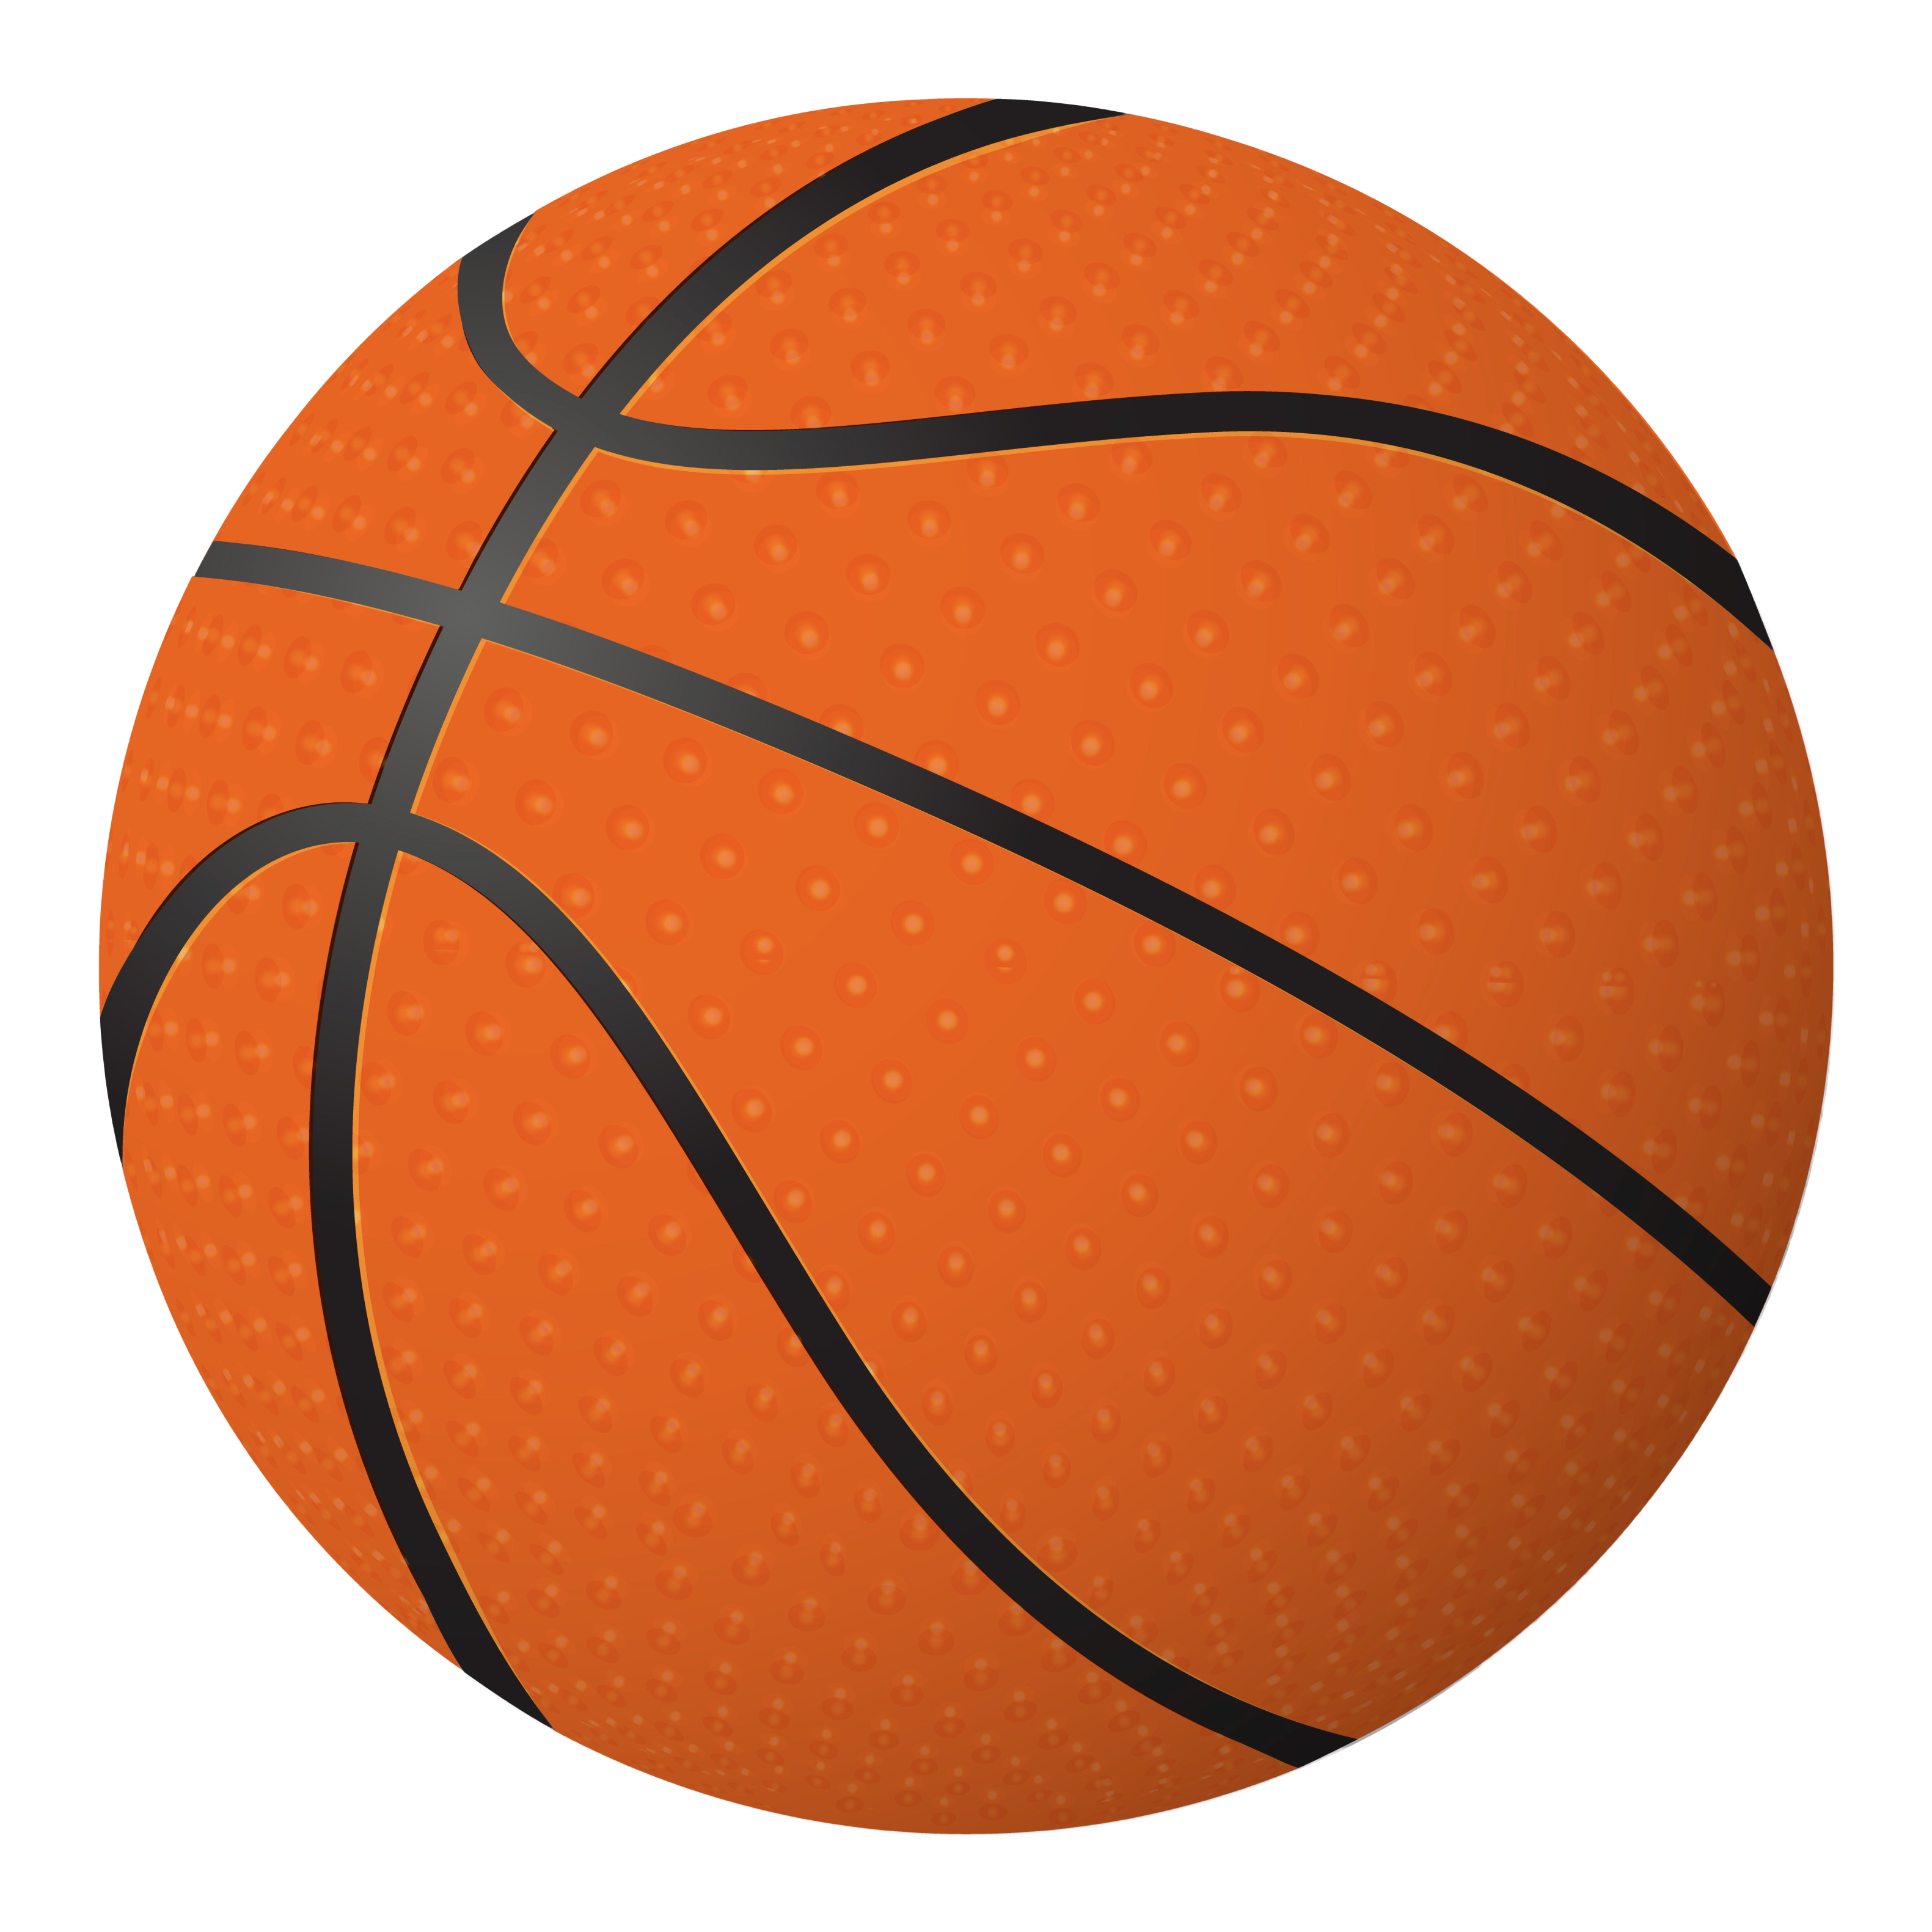 Basketball ball isolated object on white background.